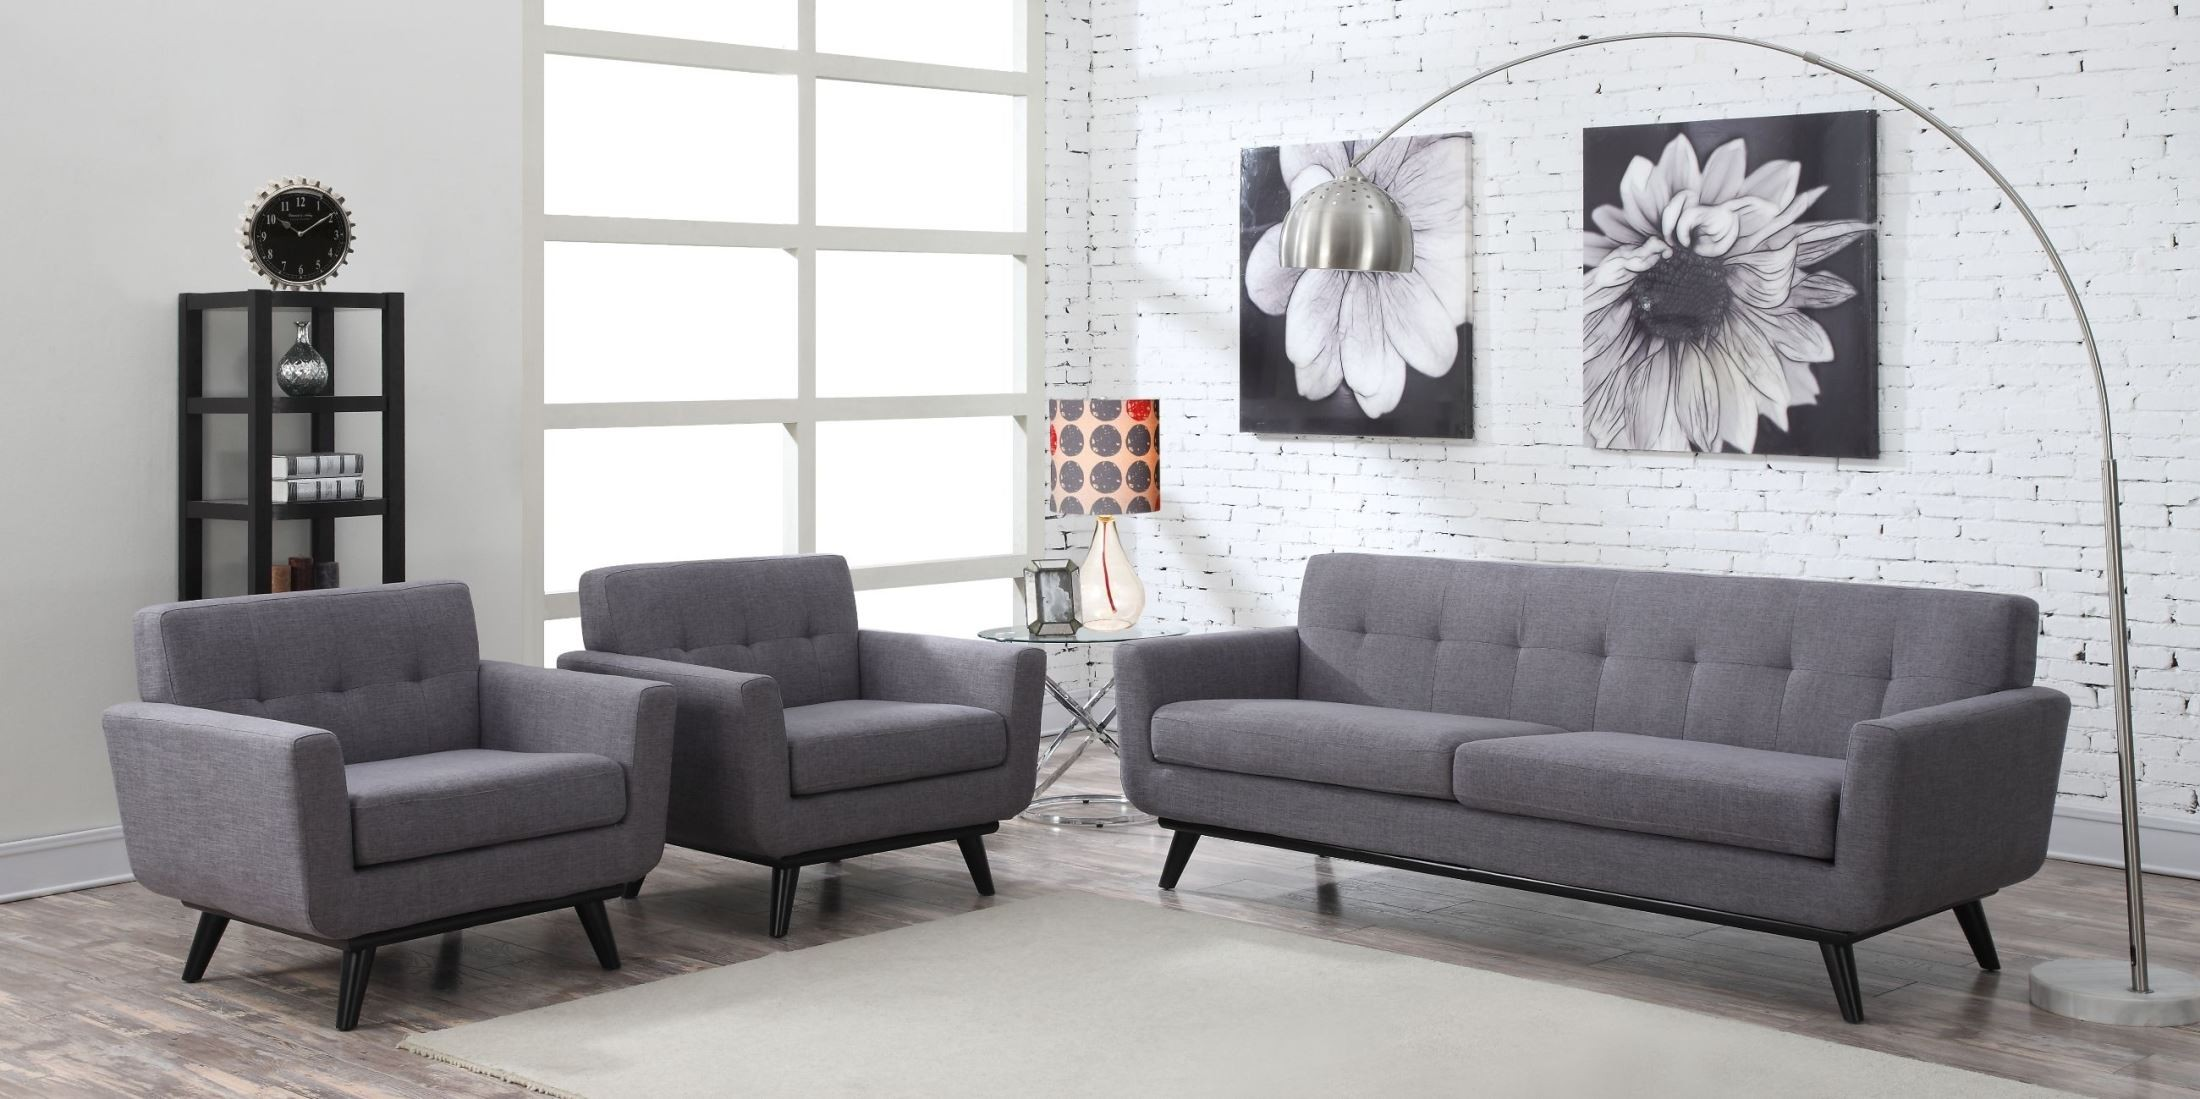 james gray linen living room set from tov a53 coleman furniture